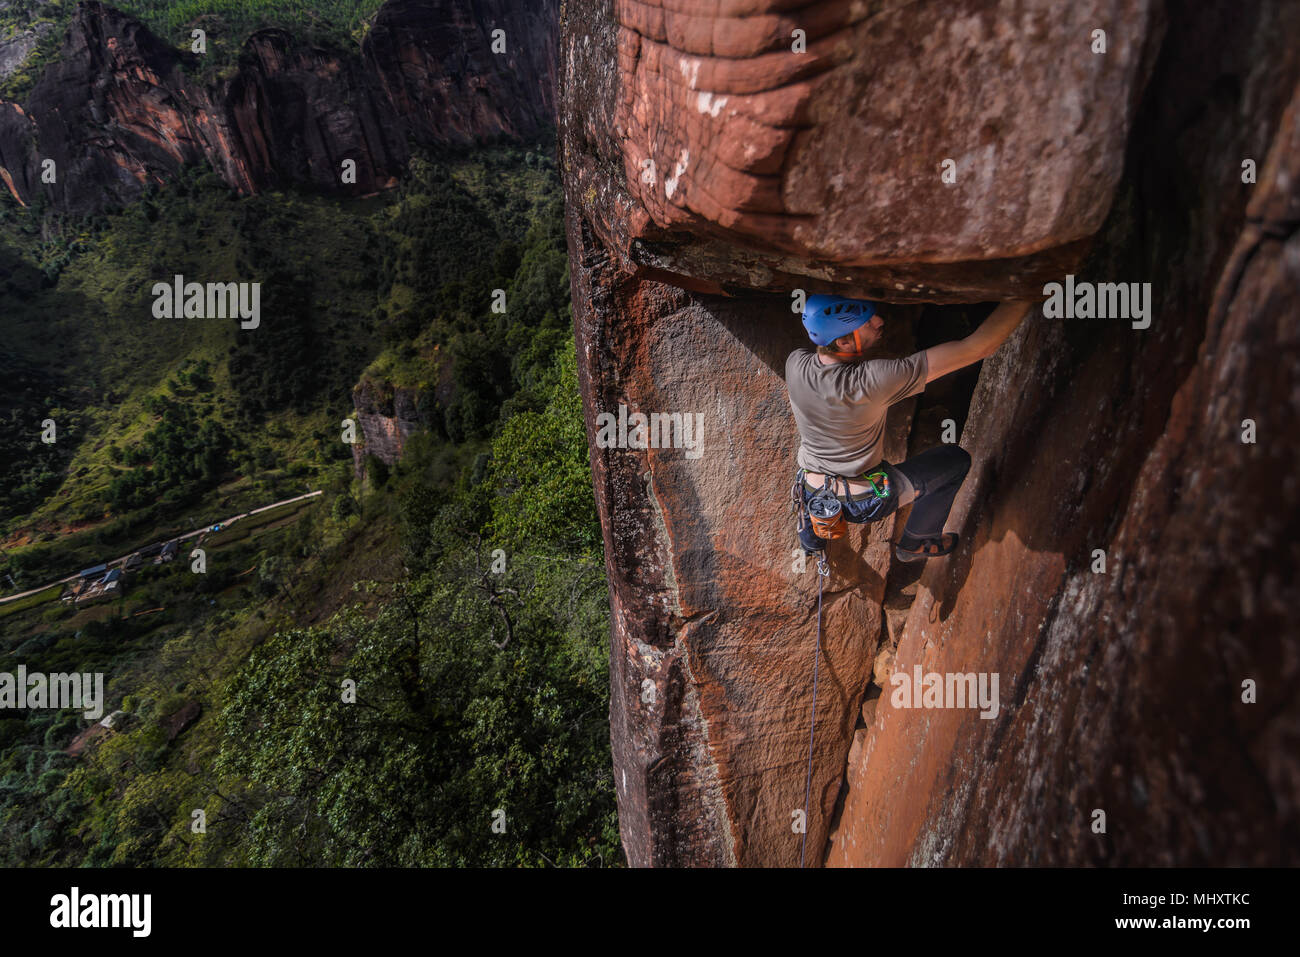 Rock climber climbing sandstone rock, elevated view, Liming, Yunnan Province, China - Stock Image